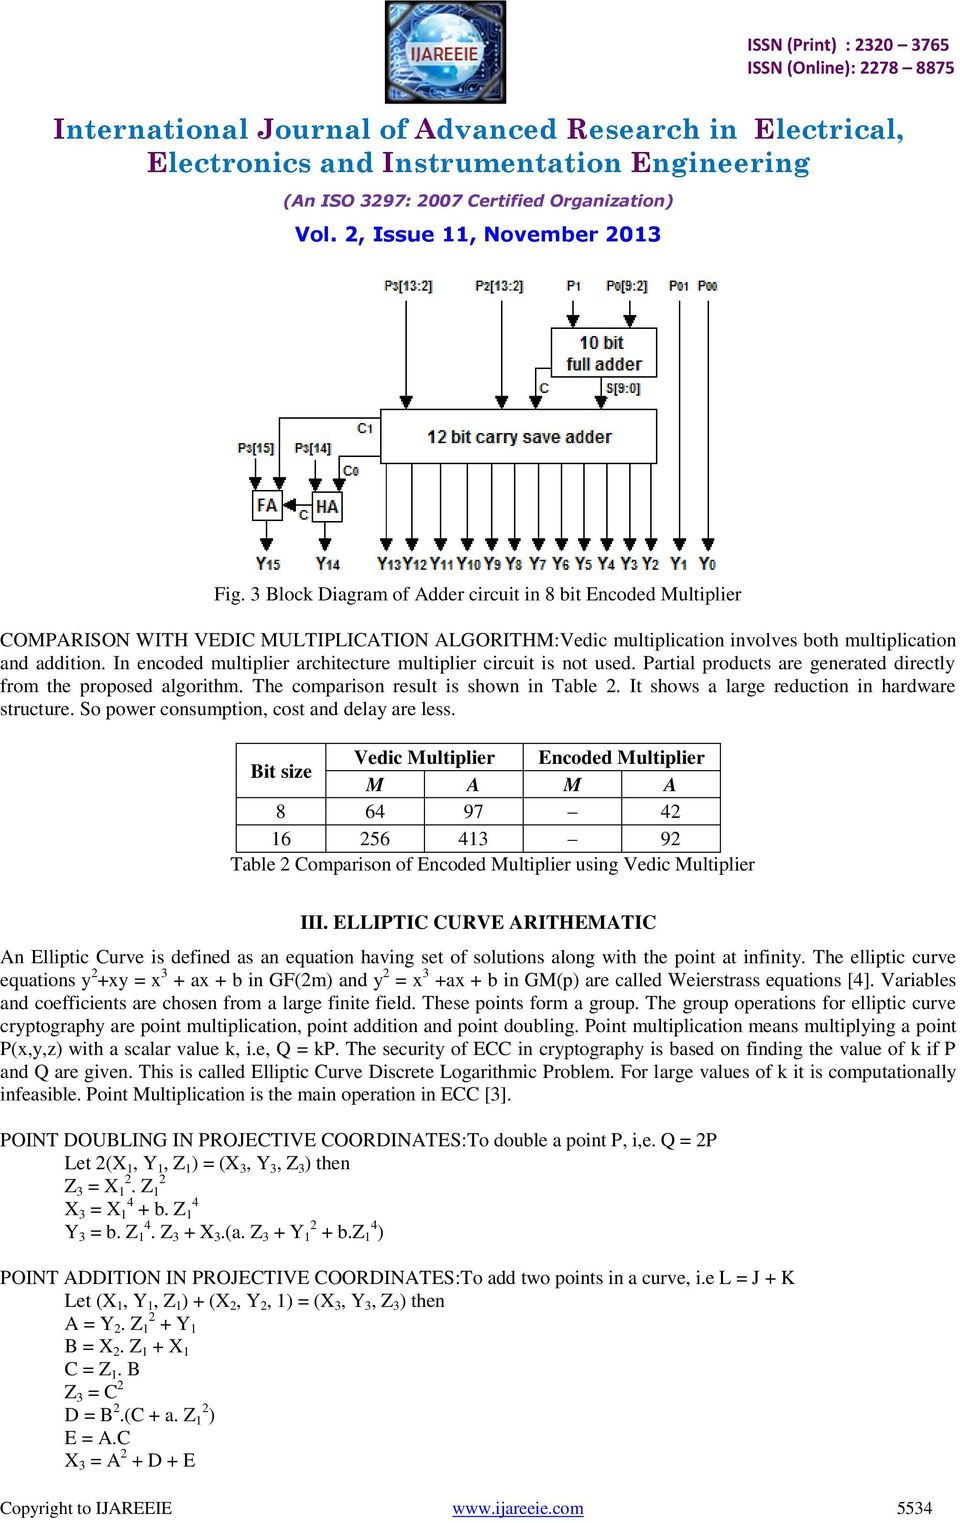 Ecc Encryption System Using Encoded Multiplier And Vedic Mathematics Bit Bcd Adder Public Circuit Online Simulator It Shows A Large Reduction In Hardware Structure So Power Consumption Cost Delay